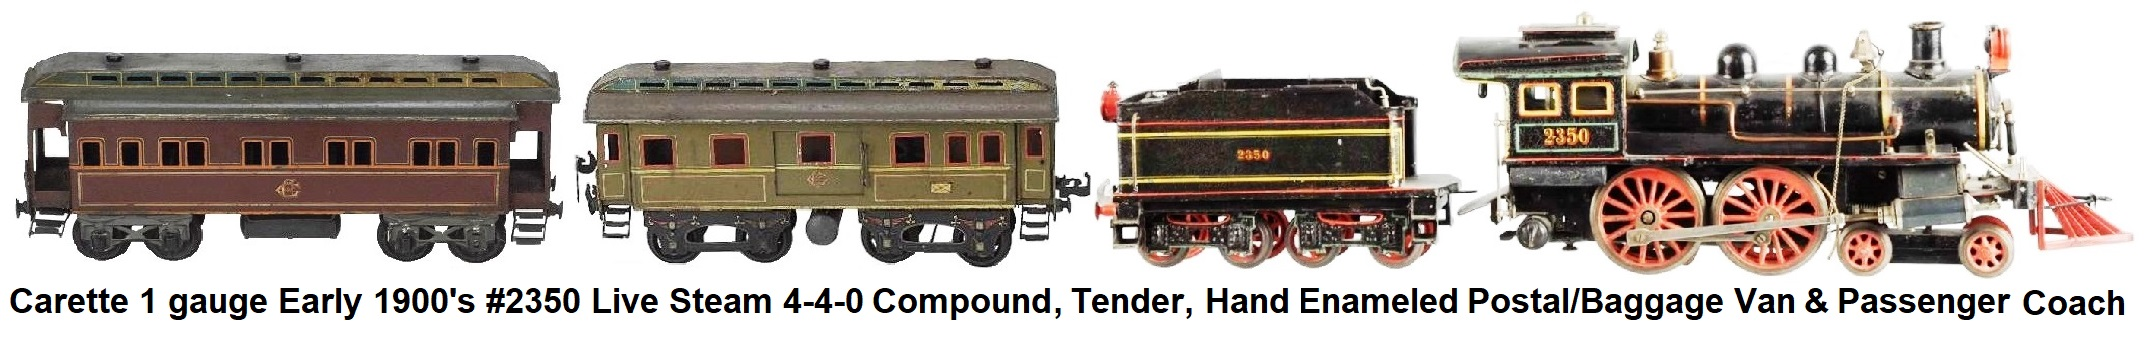 Carette 1 gauge Early 1900's #2350 Live Steam 4-4-0 Compound Loco, tender, Hand Enameled Postal/Luggage van and Passenger Coach